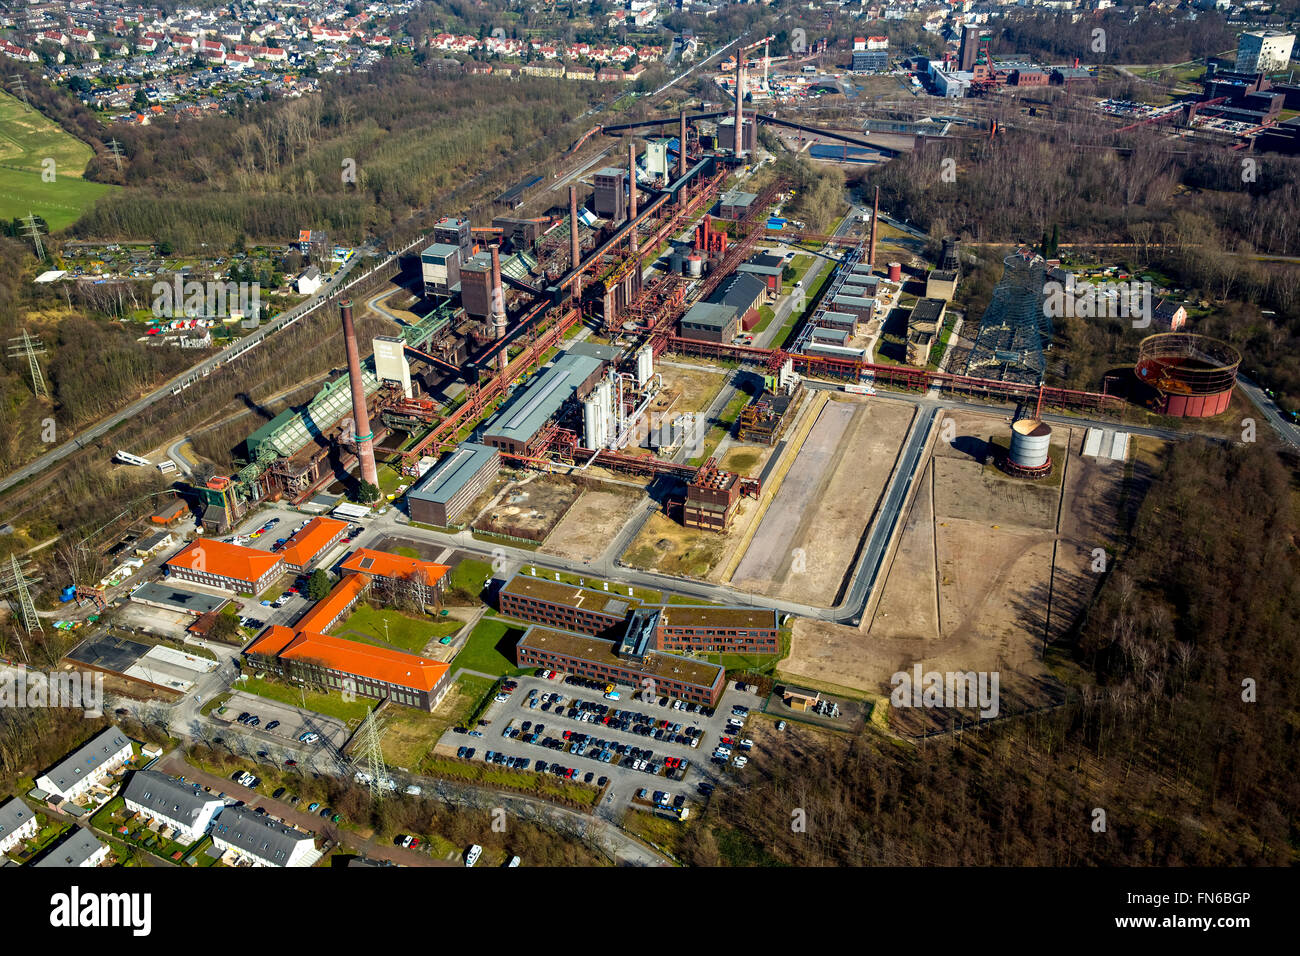 Aerial view, Zollverein Essen, former Zollverein, World Heritage Site, Essen, Ruhr, North Rhine Westphalia, Germany, - Stock Image